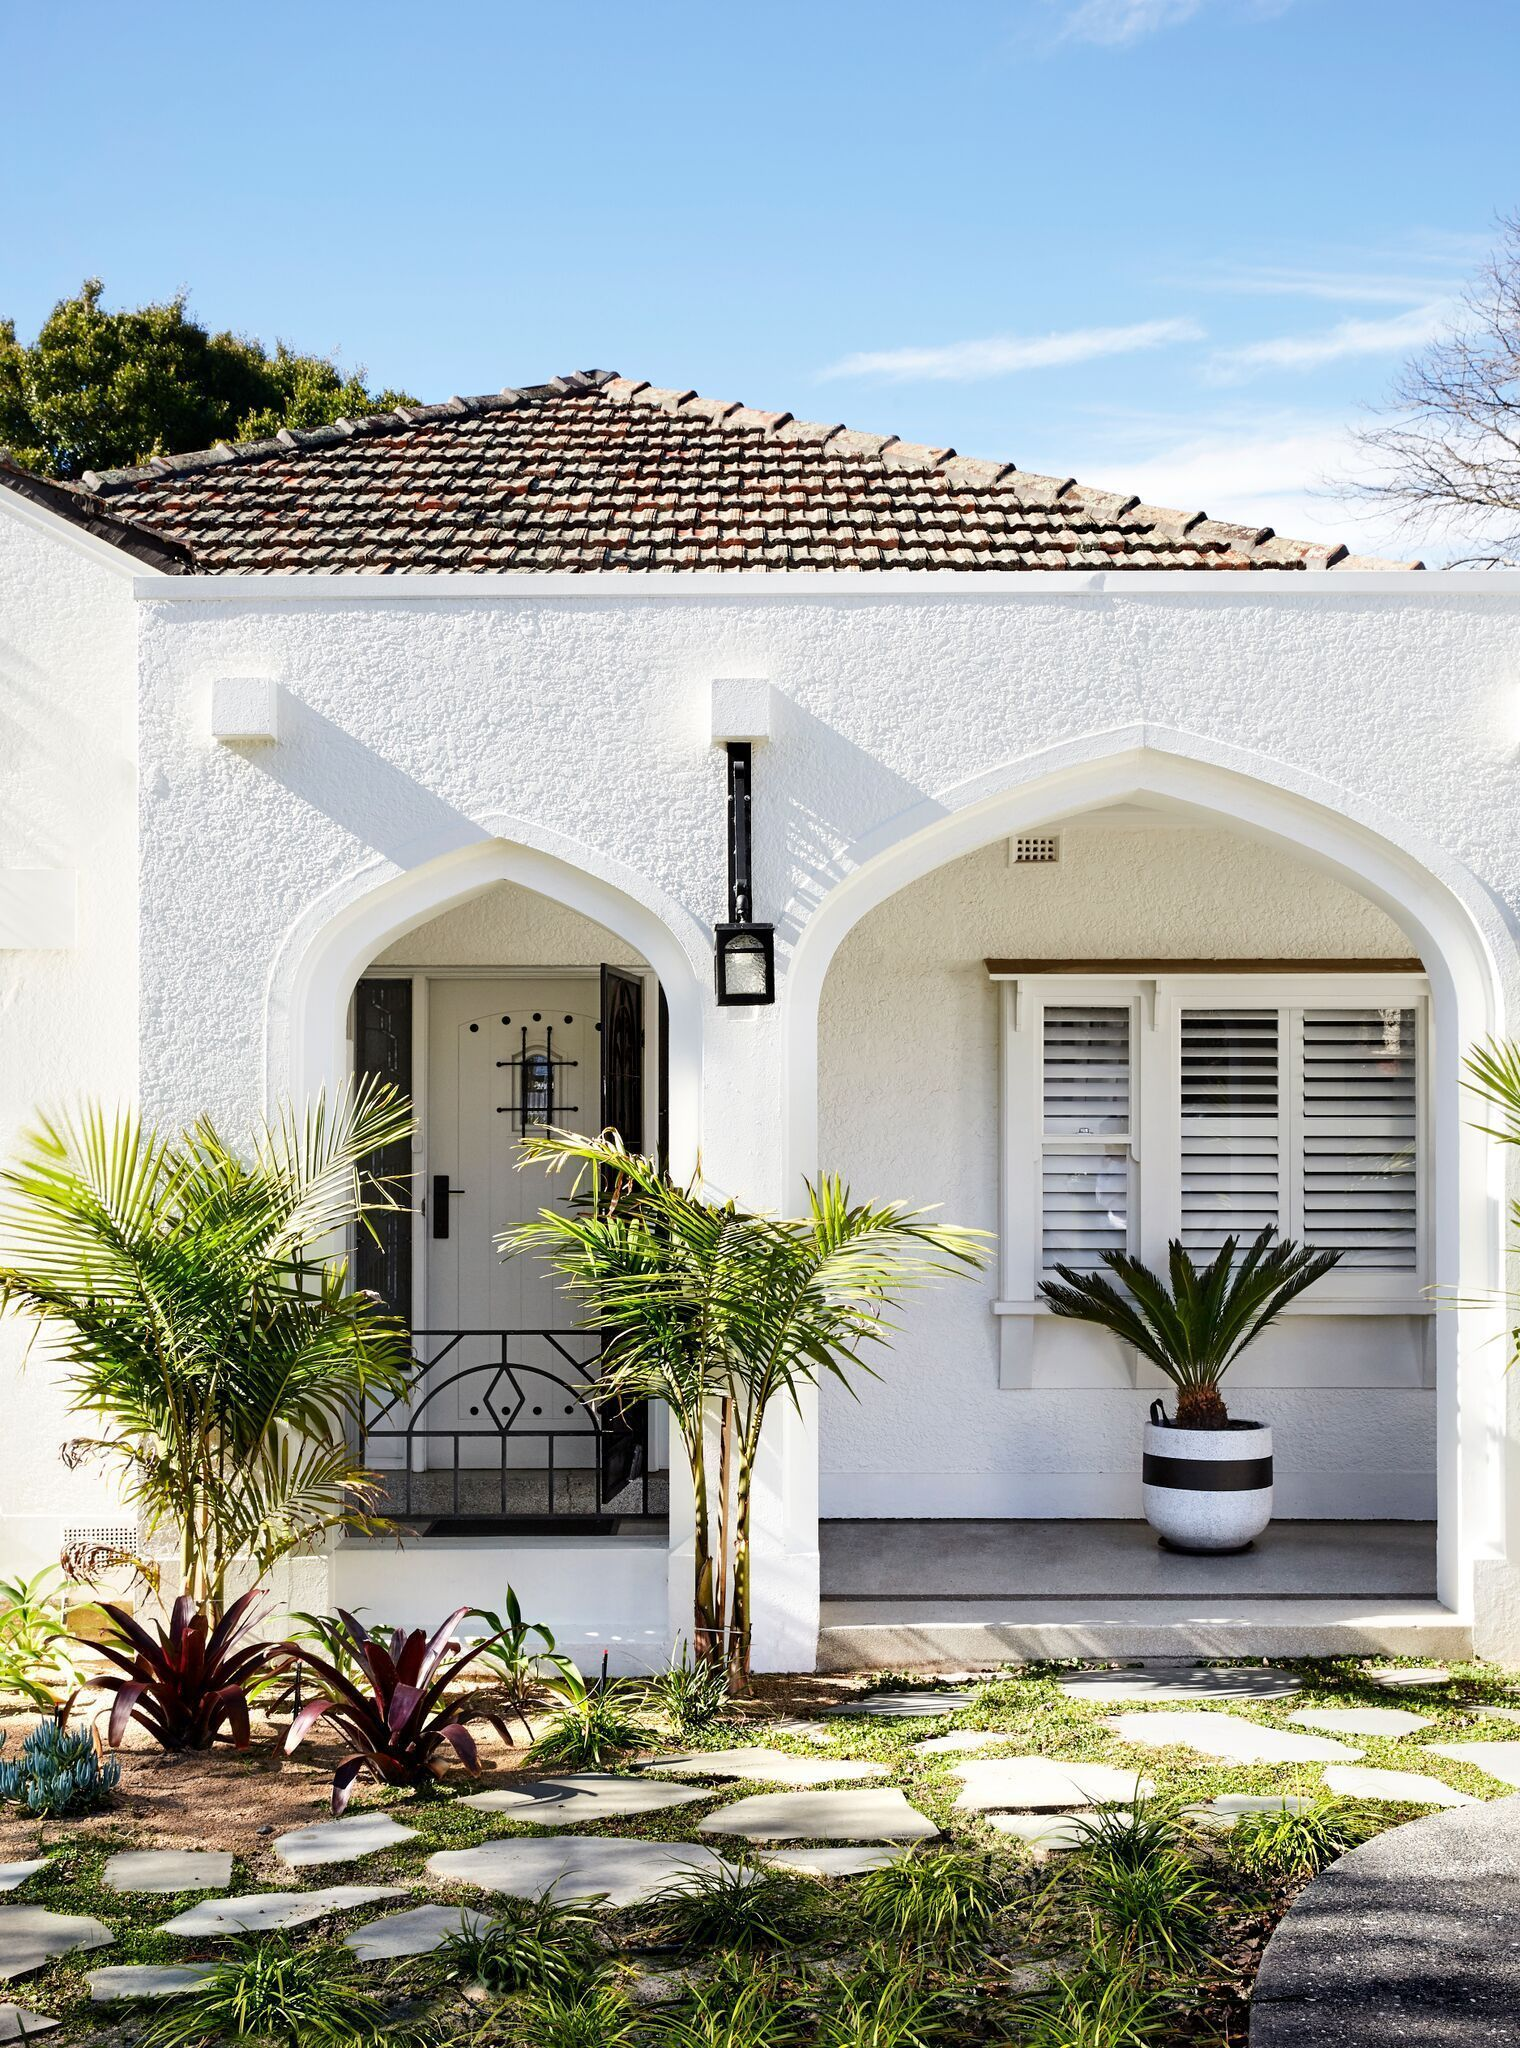 Australian Design And Architecture In 2020 Spanish Style Homes Mission House Mediterranean Style Homes